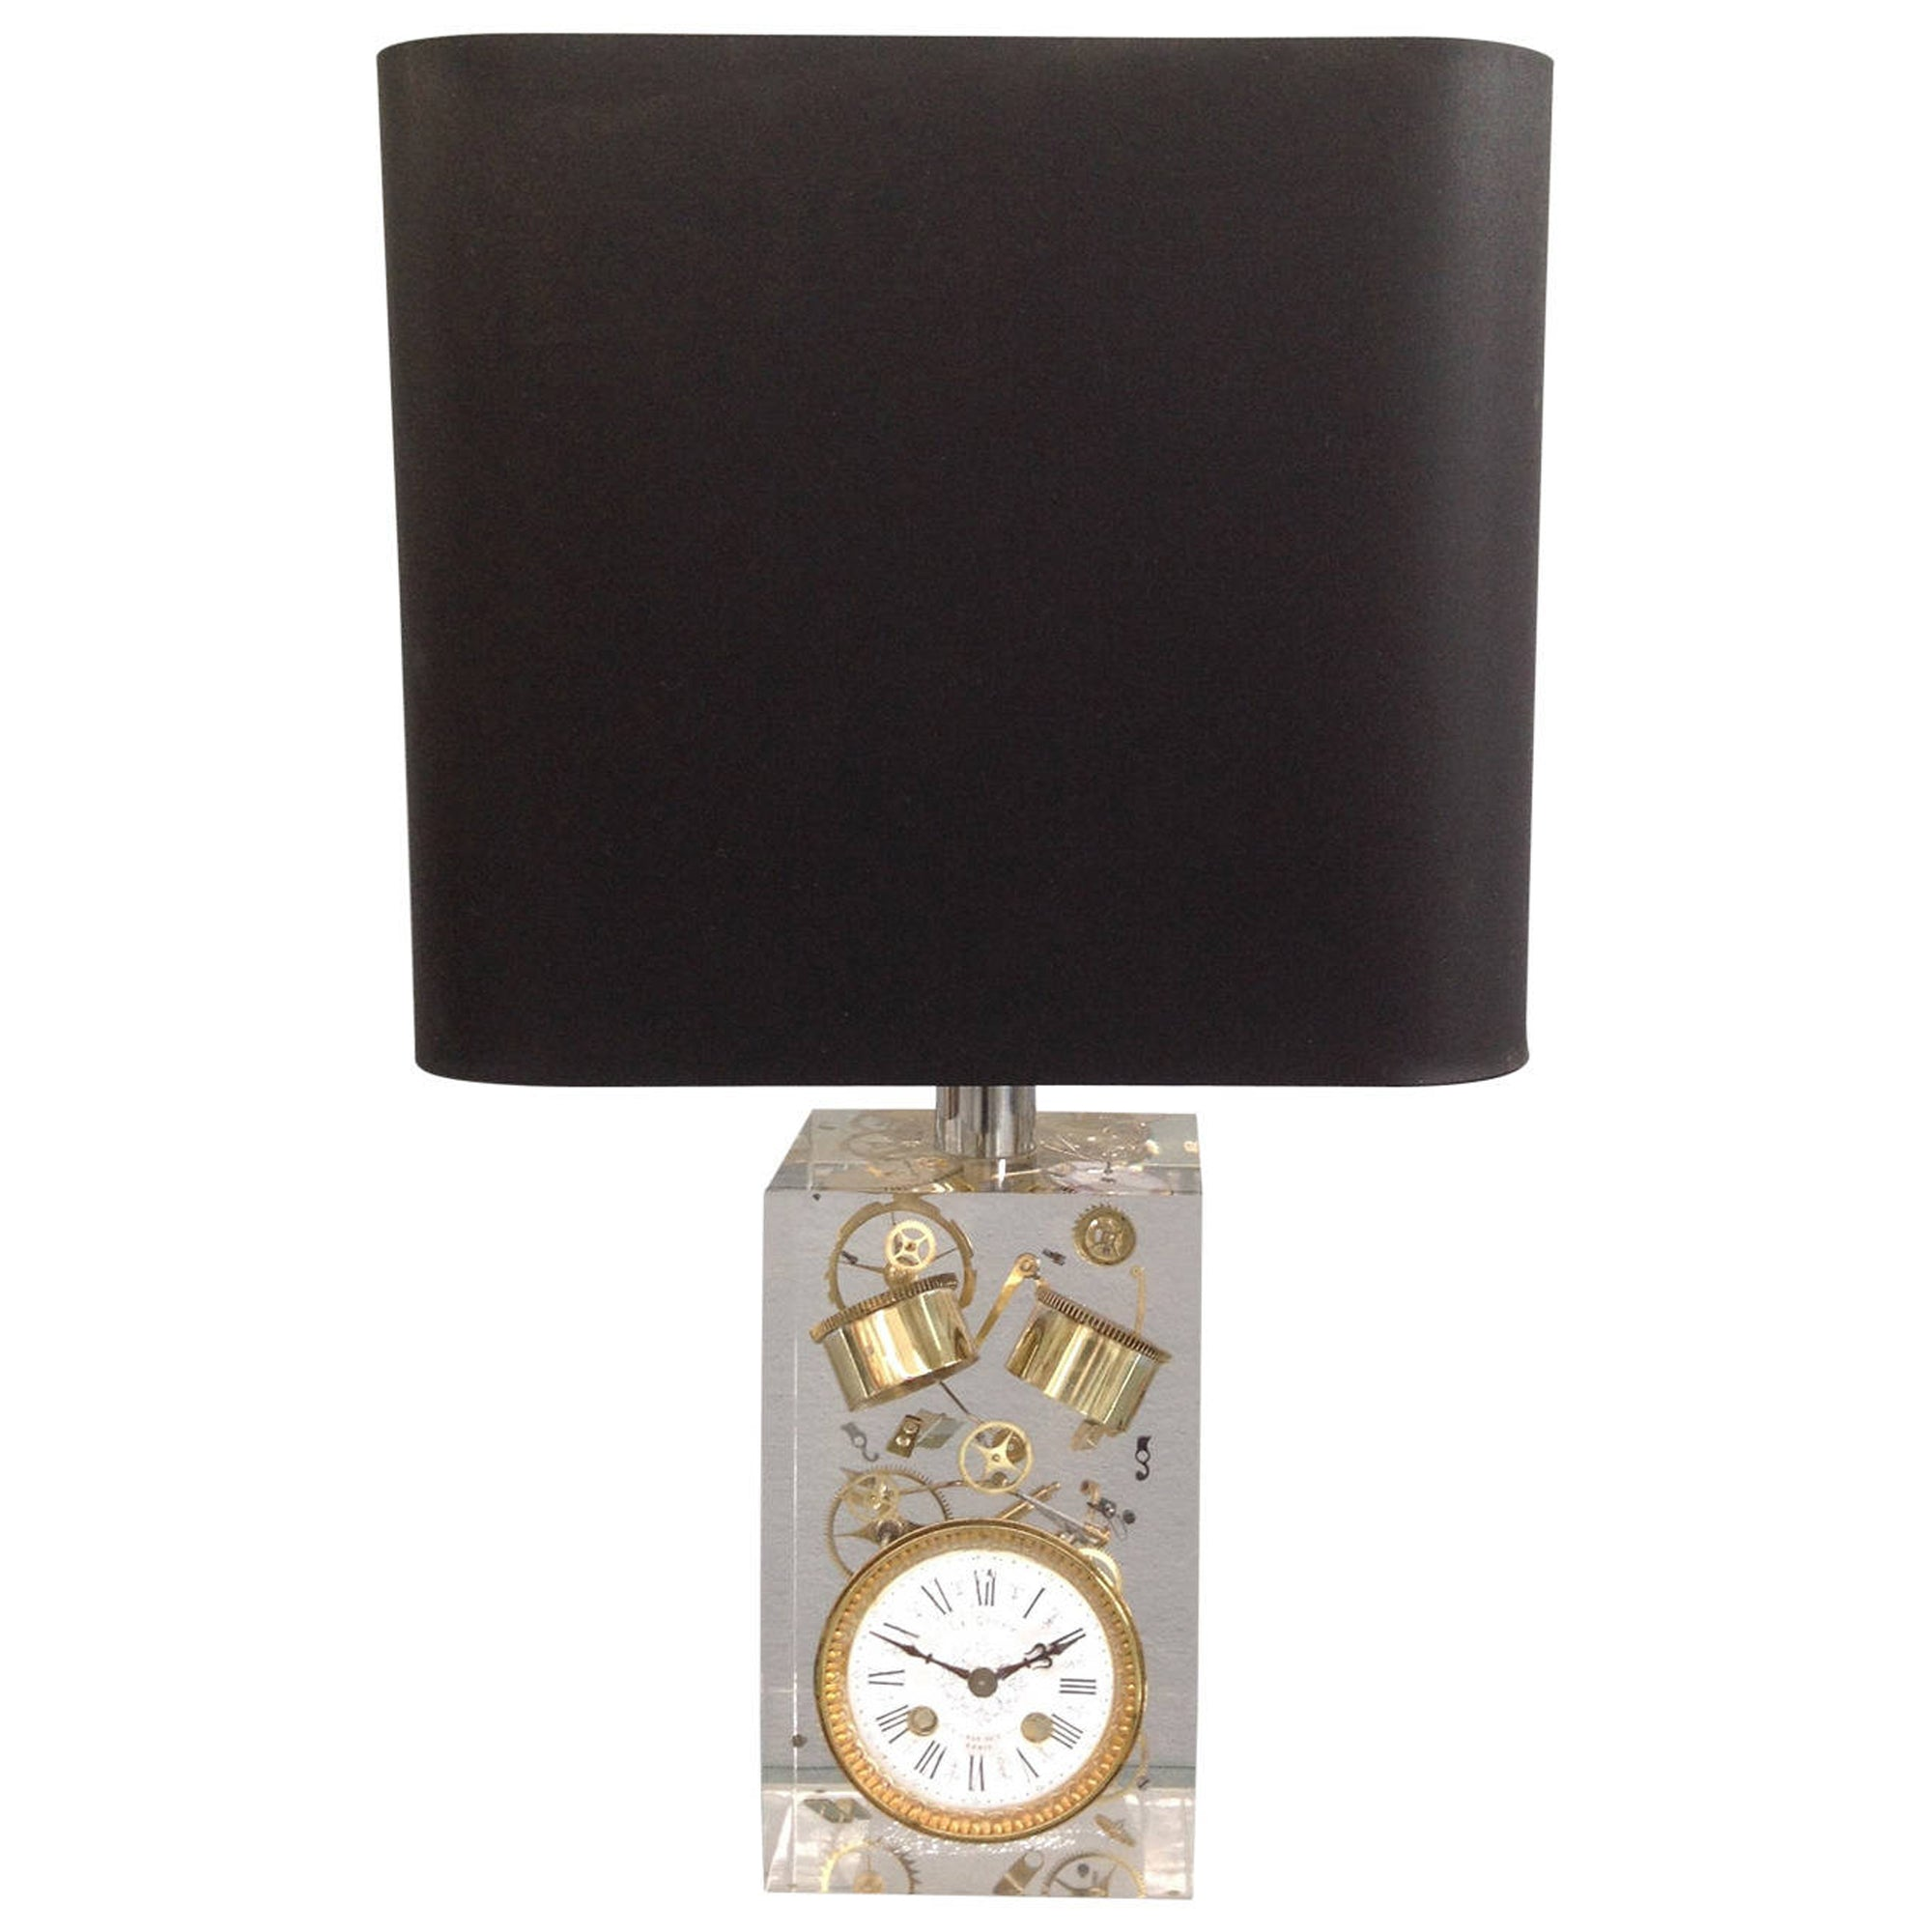 Pierre Giraudon Customo Table Lamp